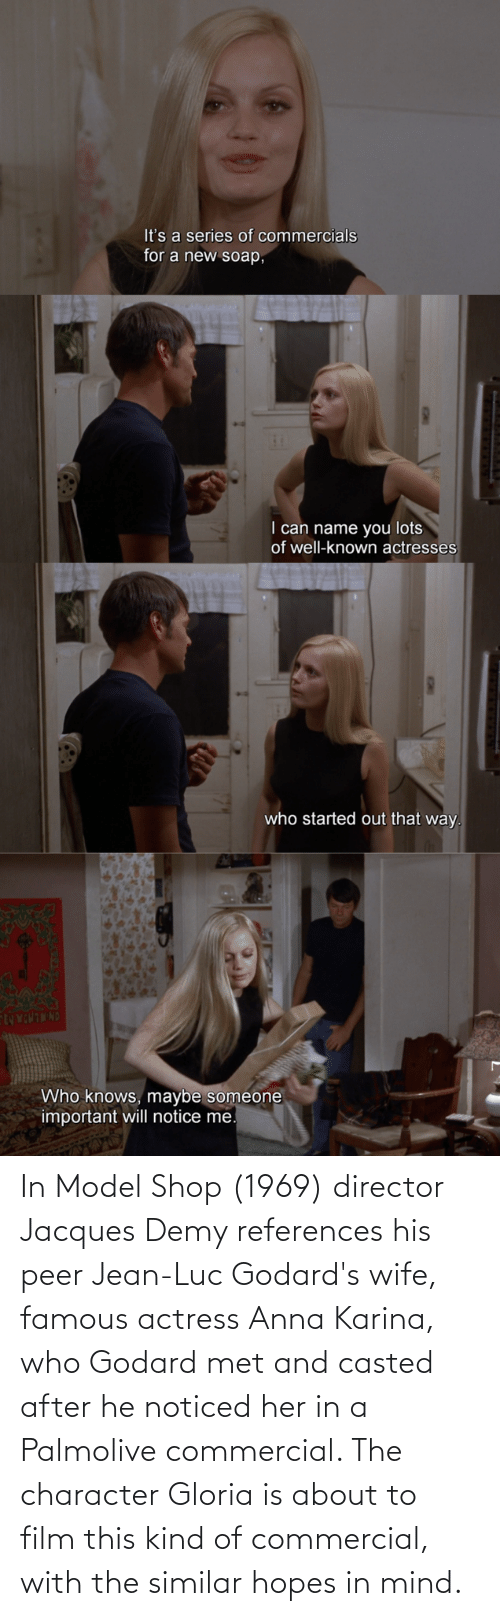 Casted: In Model Shop (1969) director Jacques Demy references his peer Jean-Luc Godard's wife, famous actress Anna Karina, who Godard met and casted after he noticed her in a Palmolive commercial. The character Gloria is about to film this kind of commercial, with the similar hopes in mind.